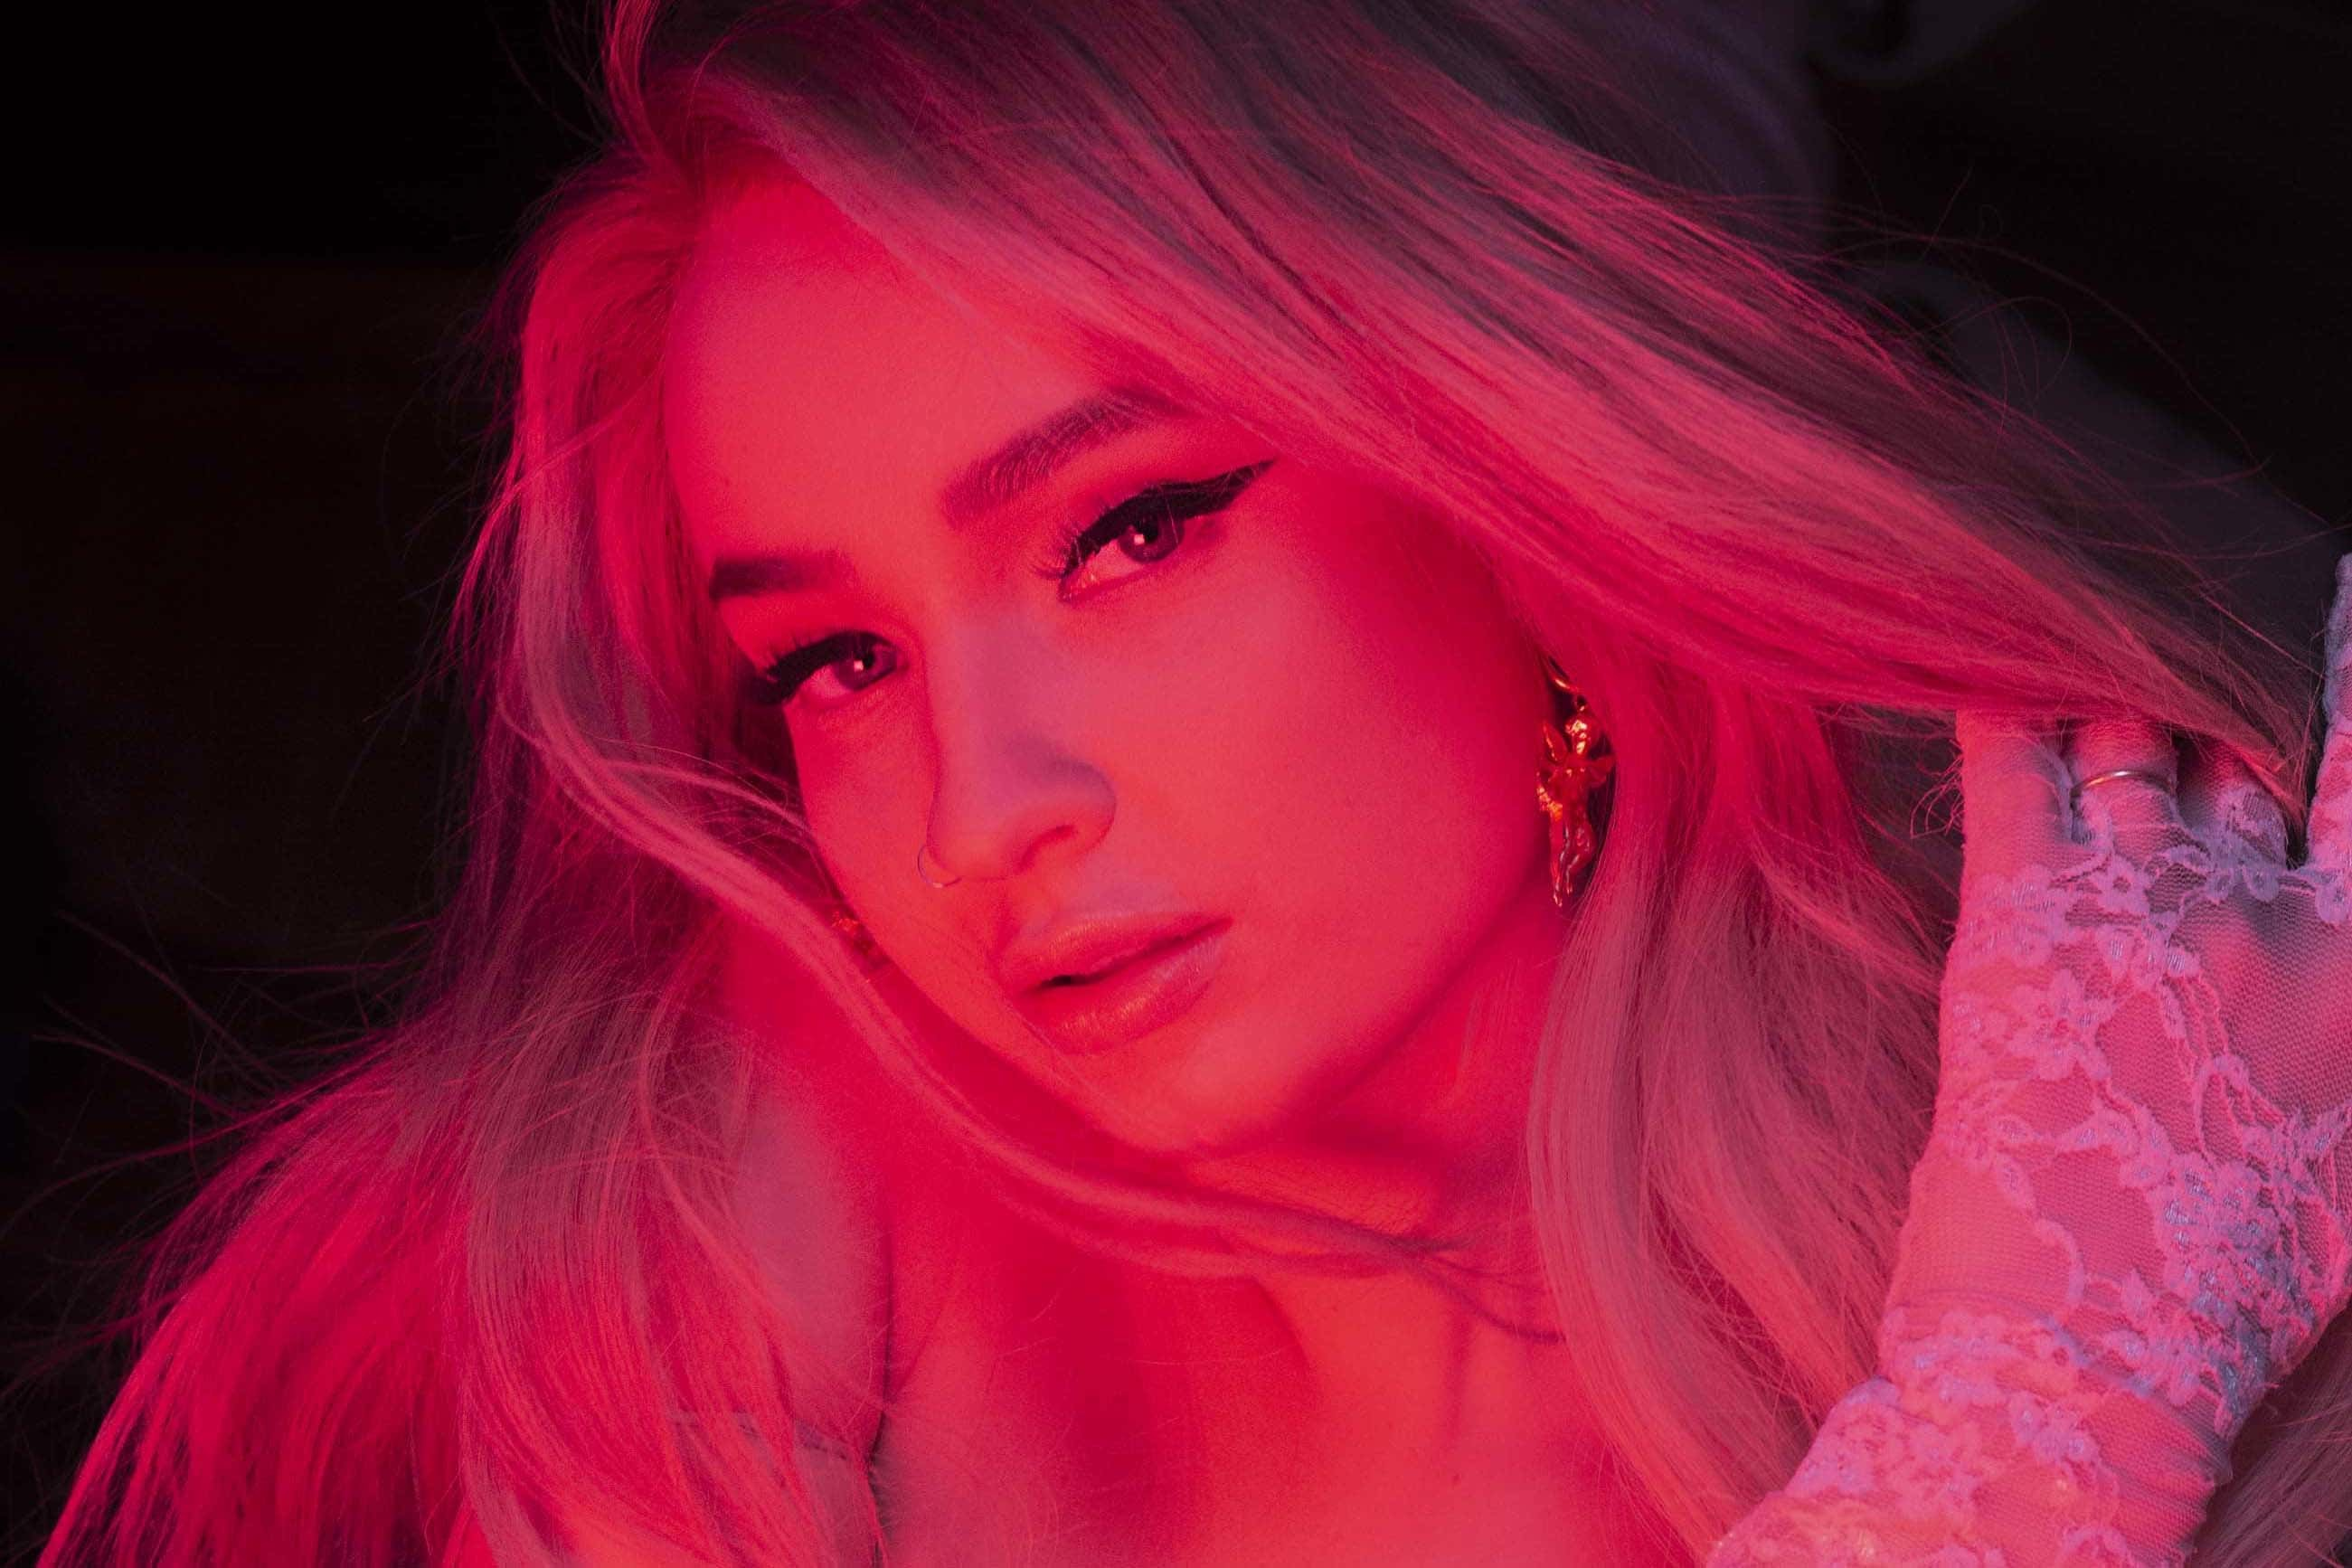 The Bitch With The Sauce: Kim Petras